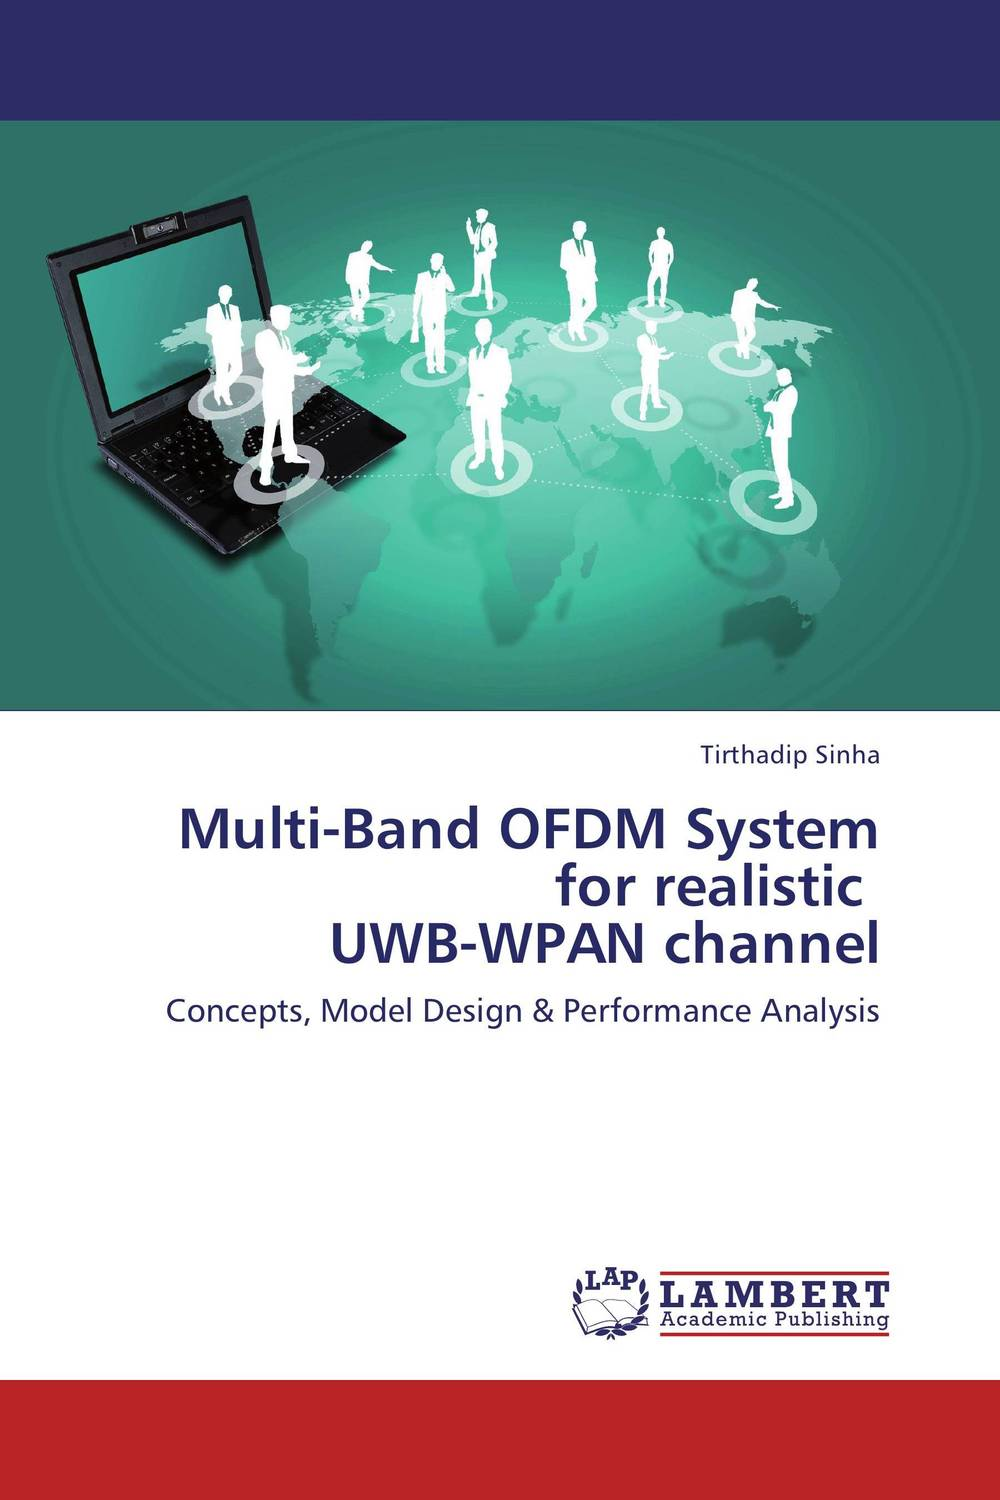 Multi-Band OFDM System for realistic UWB-WPAN channel abhinav singh and pankaj kumar patel analysis of beacon enabled ieee zigbee wireless network in wpan